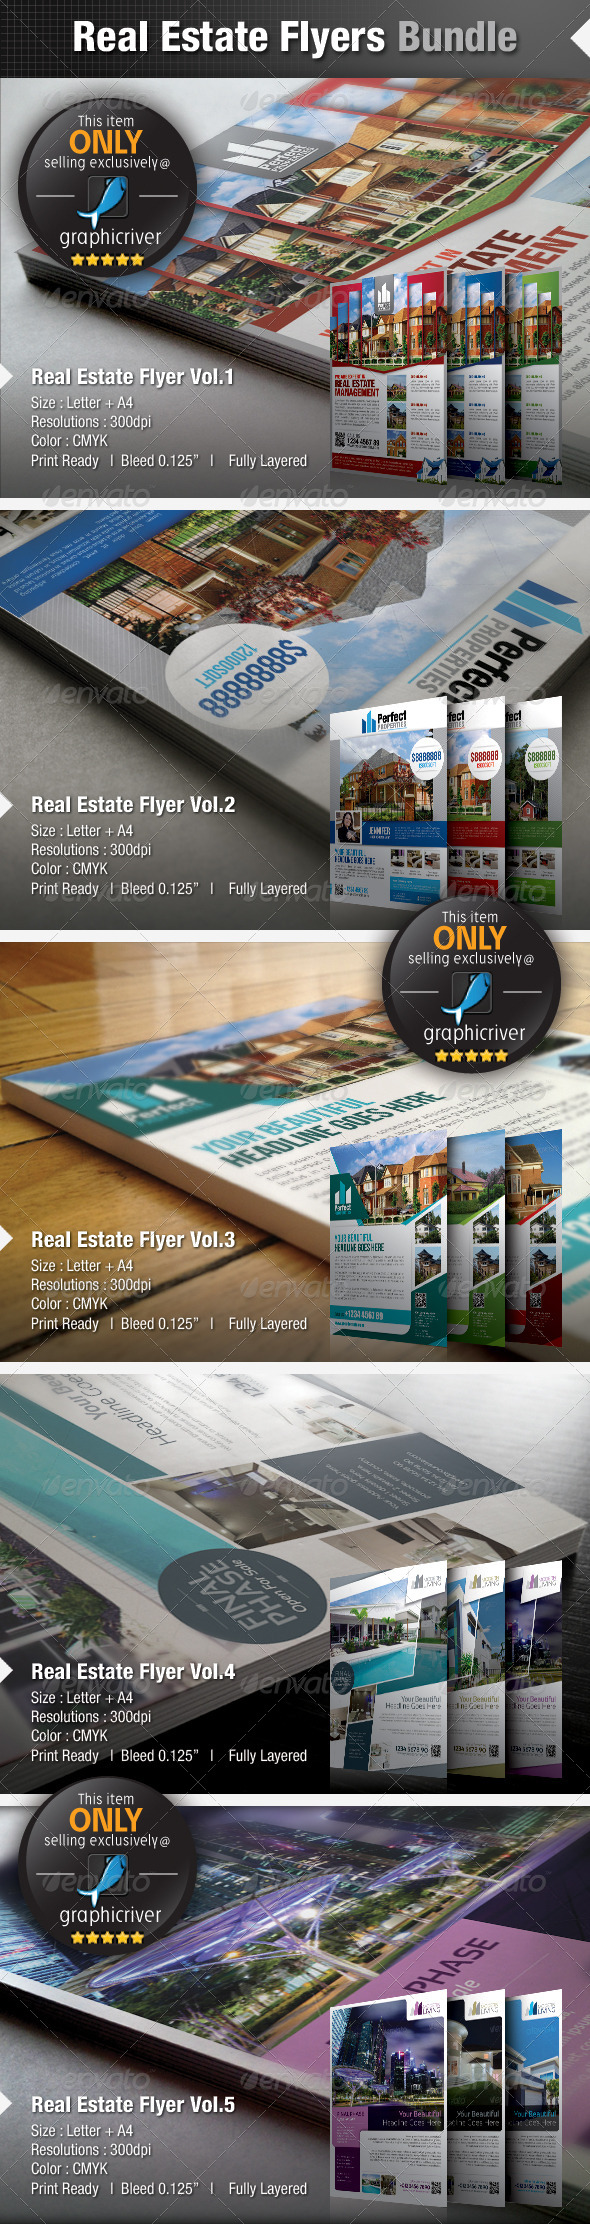 Simple Real Estate Flyers Bundle